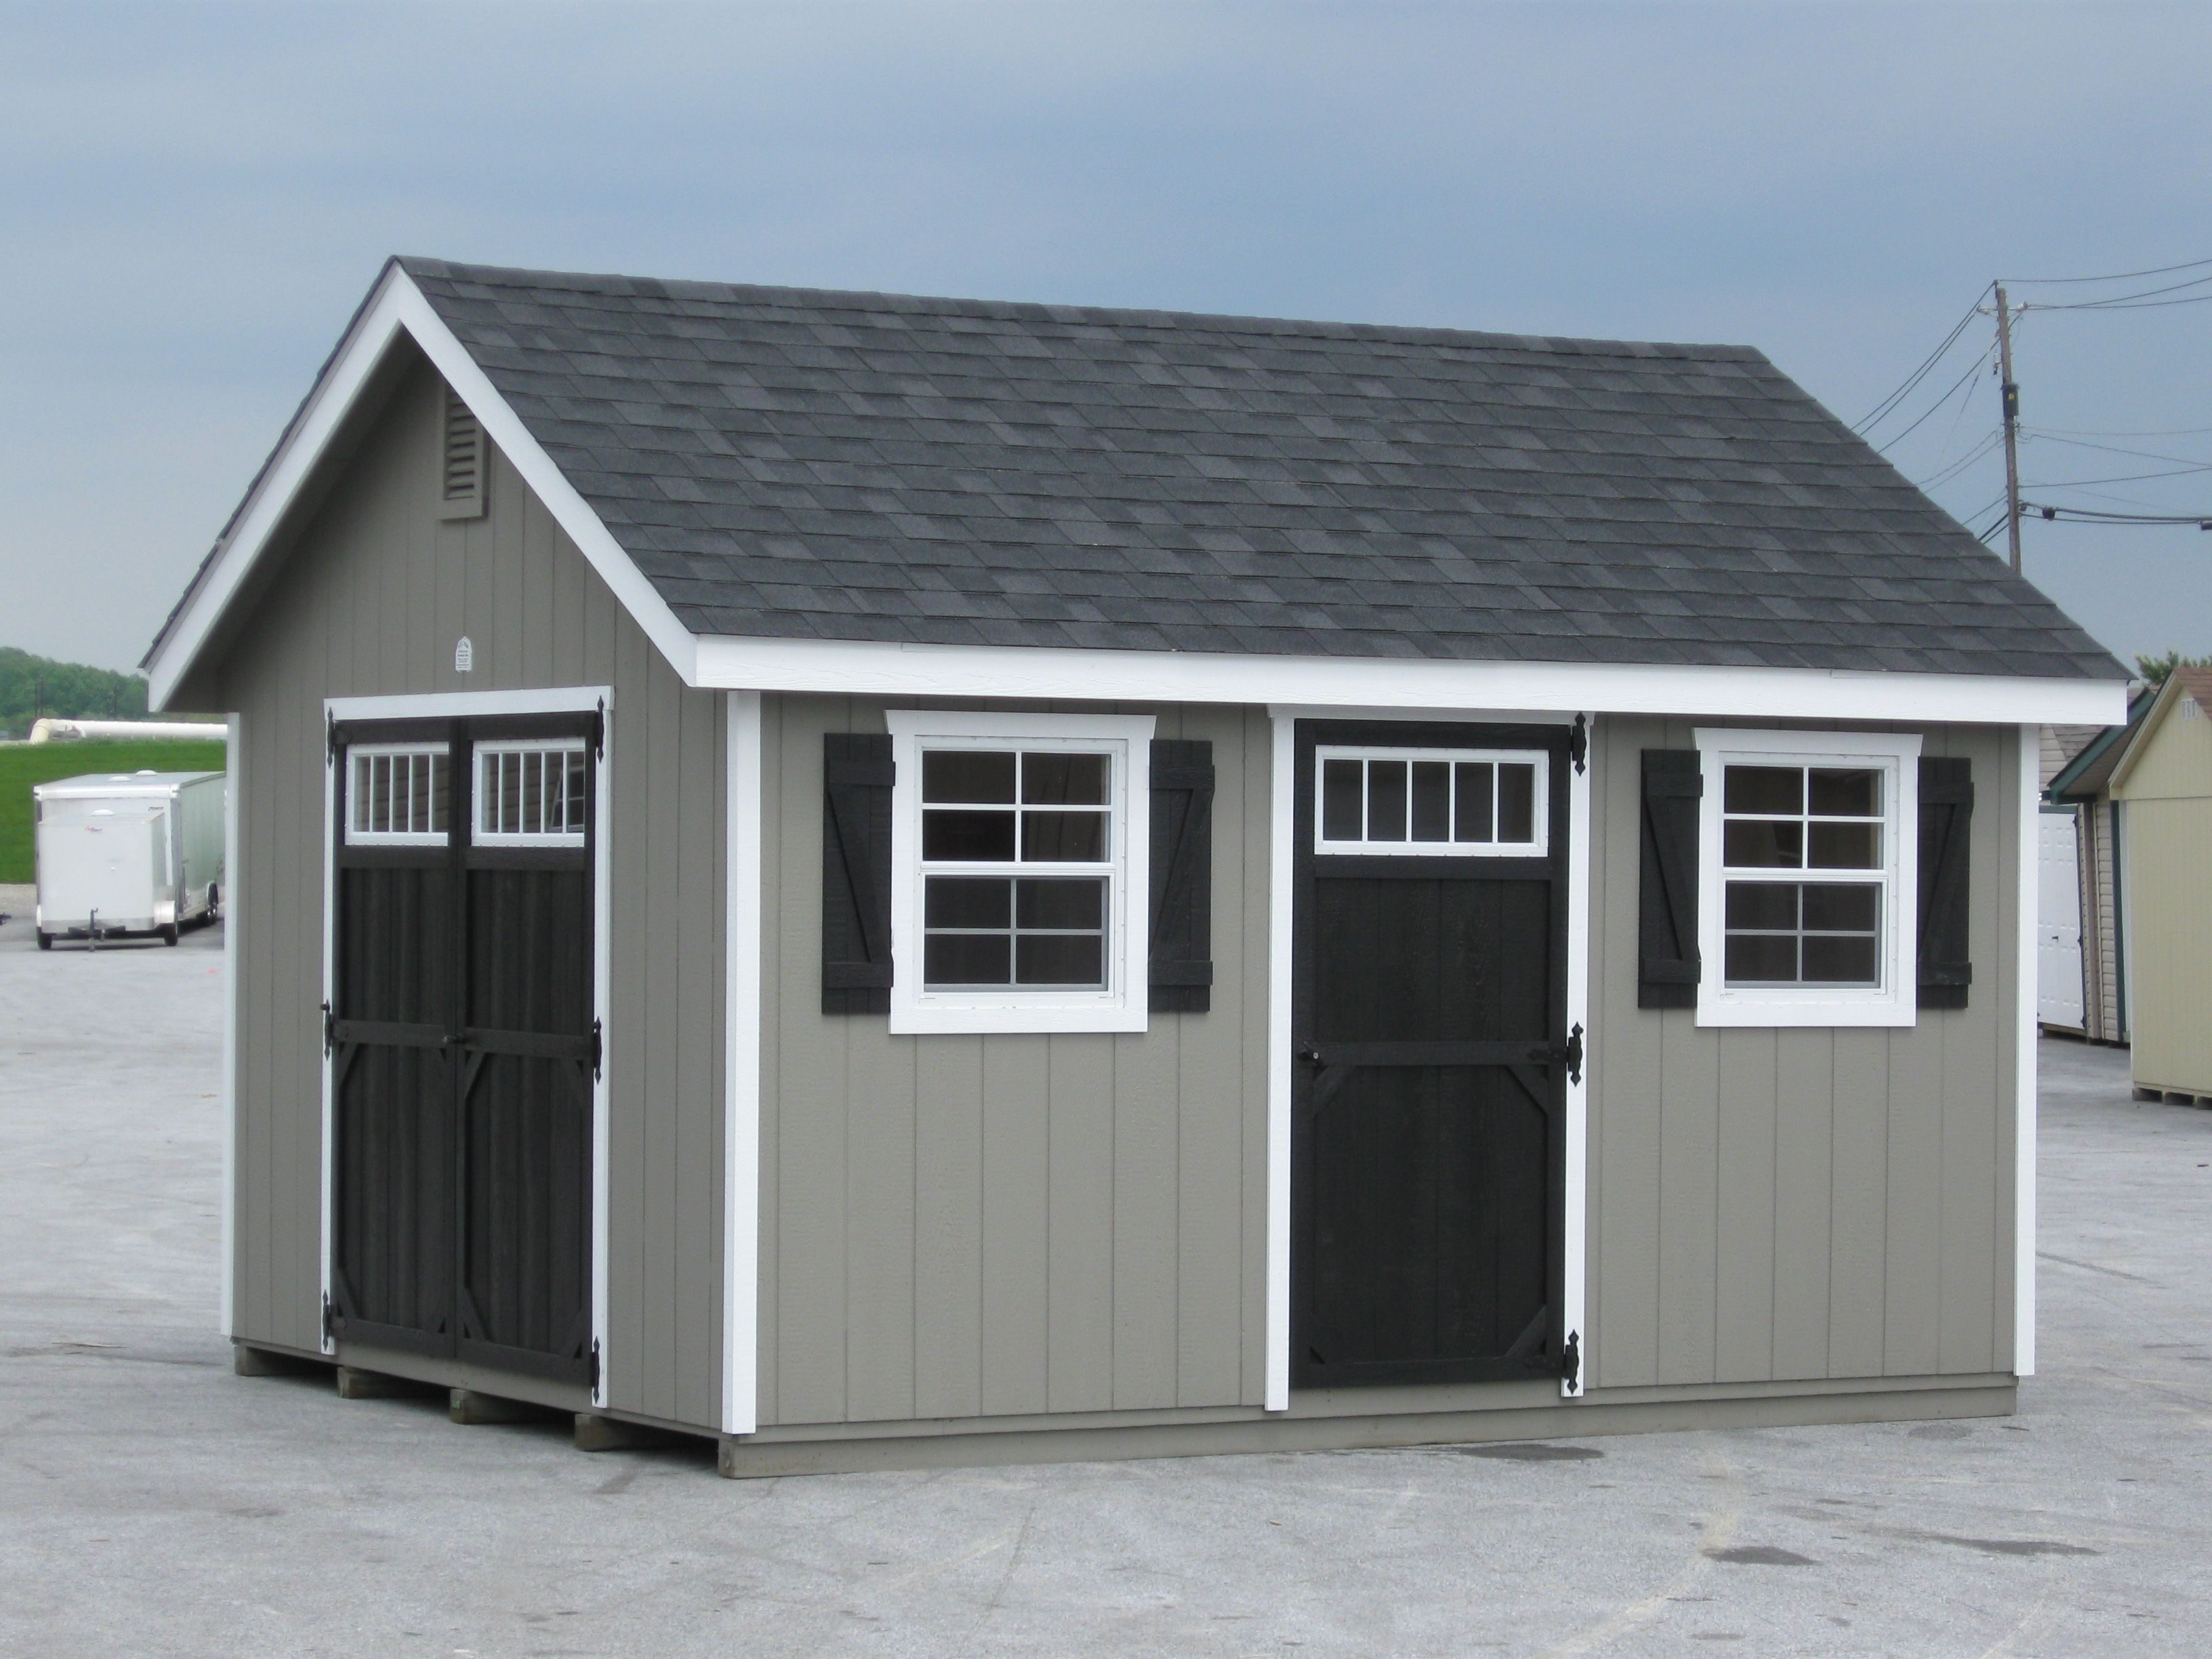 Deluxe with dormer transom windows and cupola - Transom Windows In The Doors Give You Extra Light And A Beautiful Look